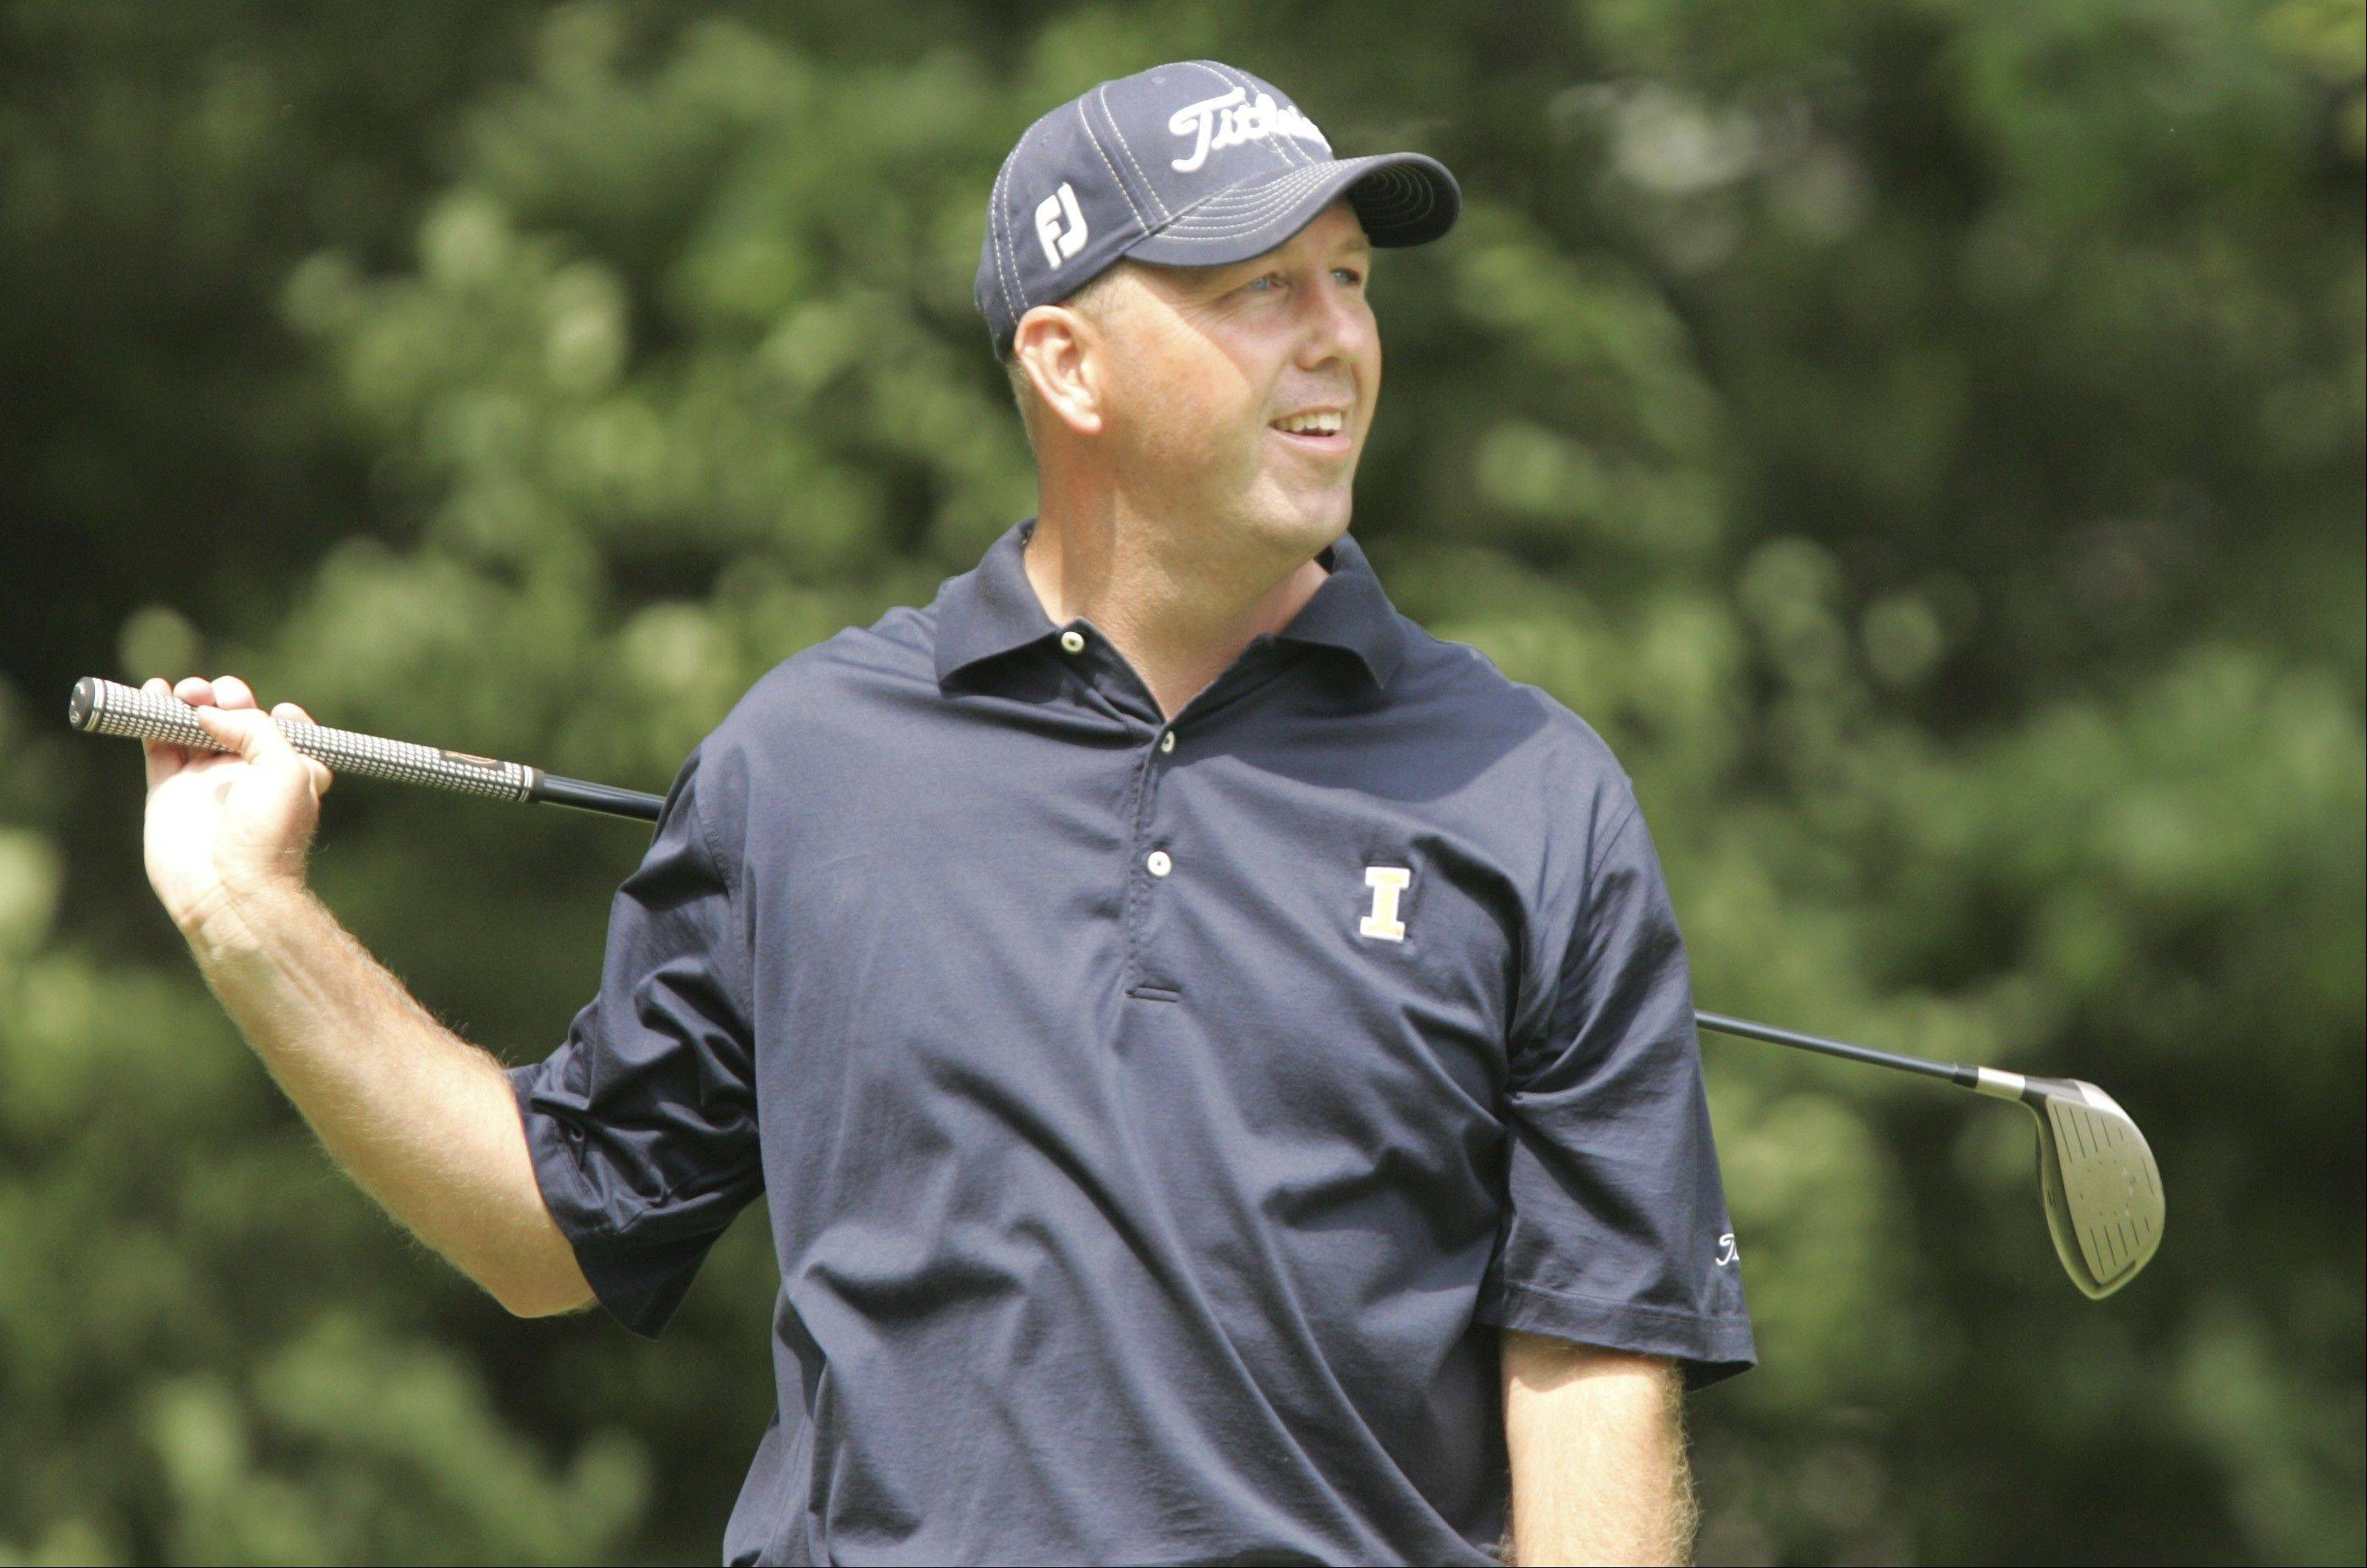 Mike Small has won the Illinois Open four times. He will begin his quest for a fifth title Monday morning at Hawthorn Woods.